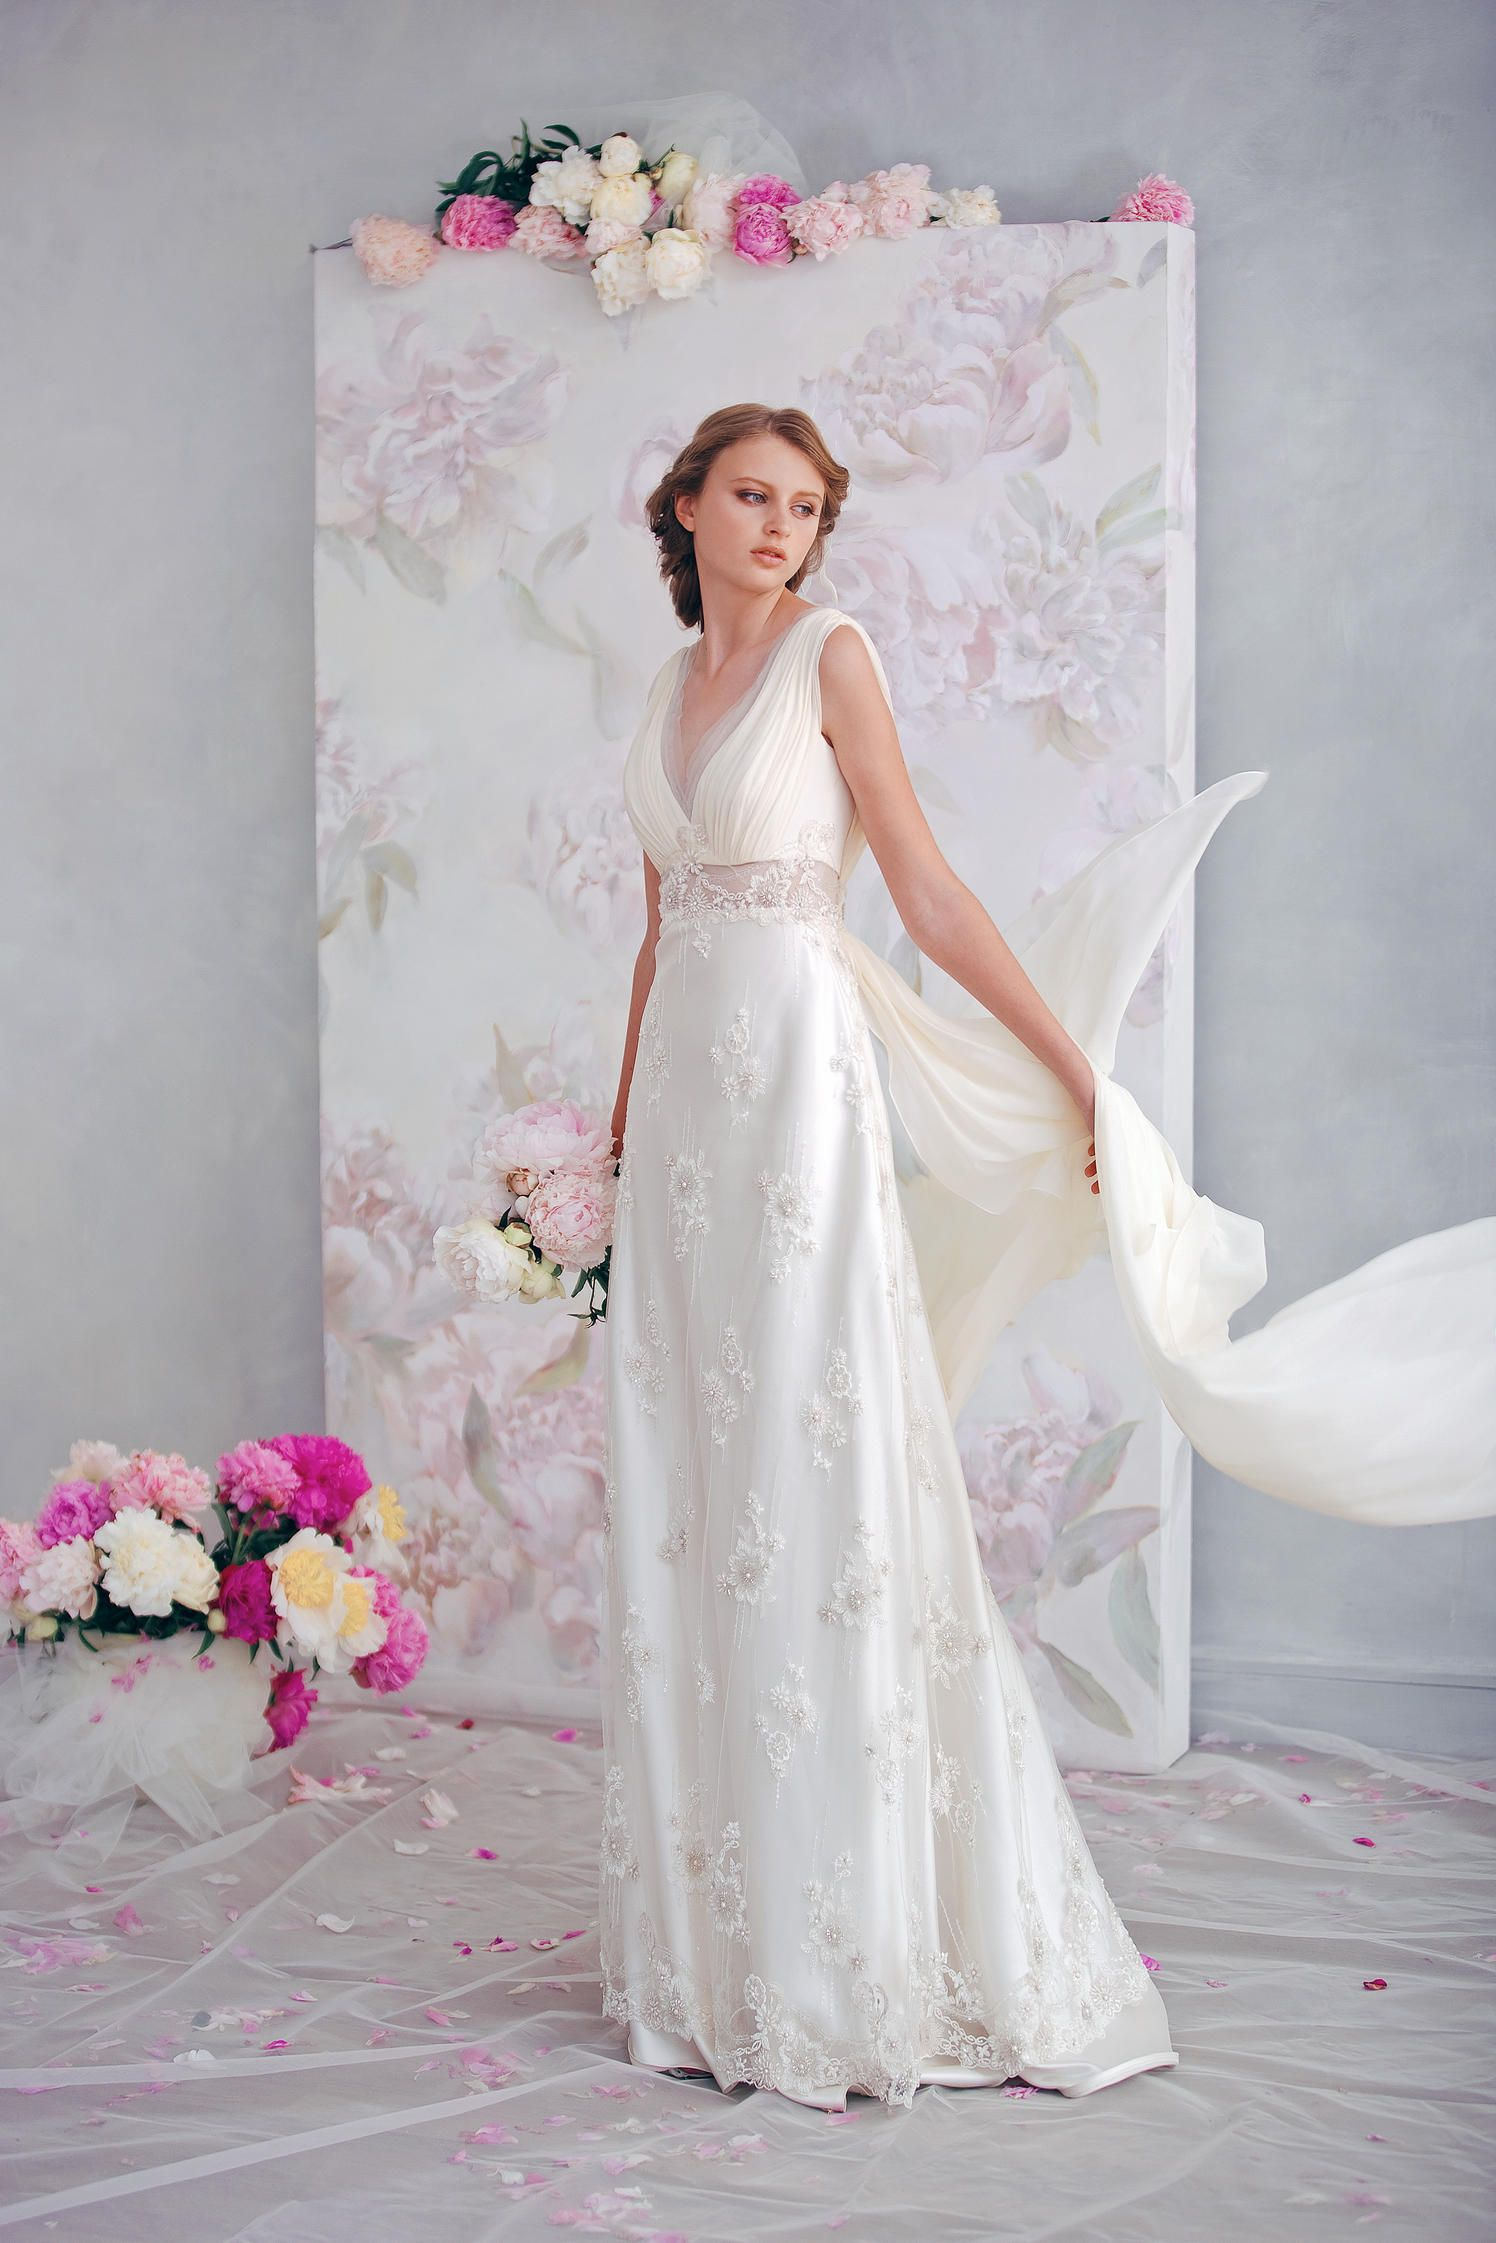 Papilio wedding natalia exclusif wedding dresses montreal papilio wedding exclusif montreal bridal boutique with a large selection of wedding gowns maid of honor dresses bridesmaid dressesmother of the bride ombrellifo Choice Image